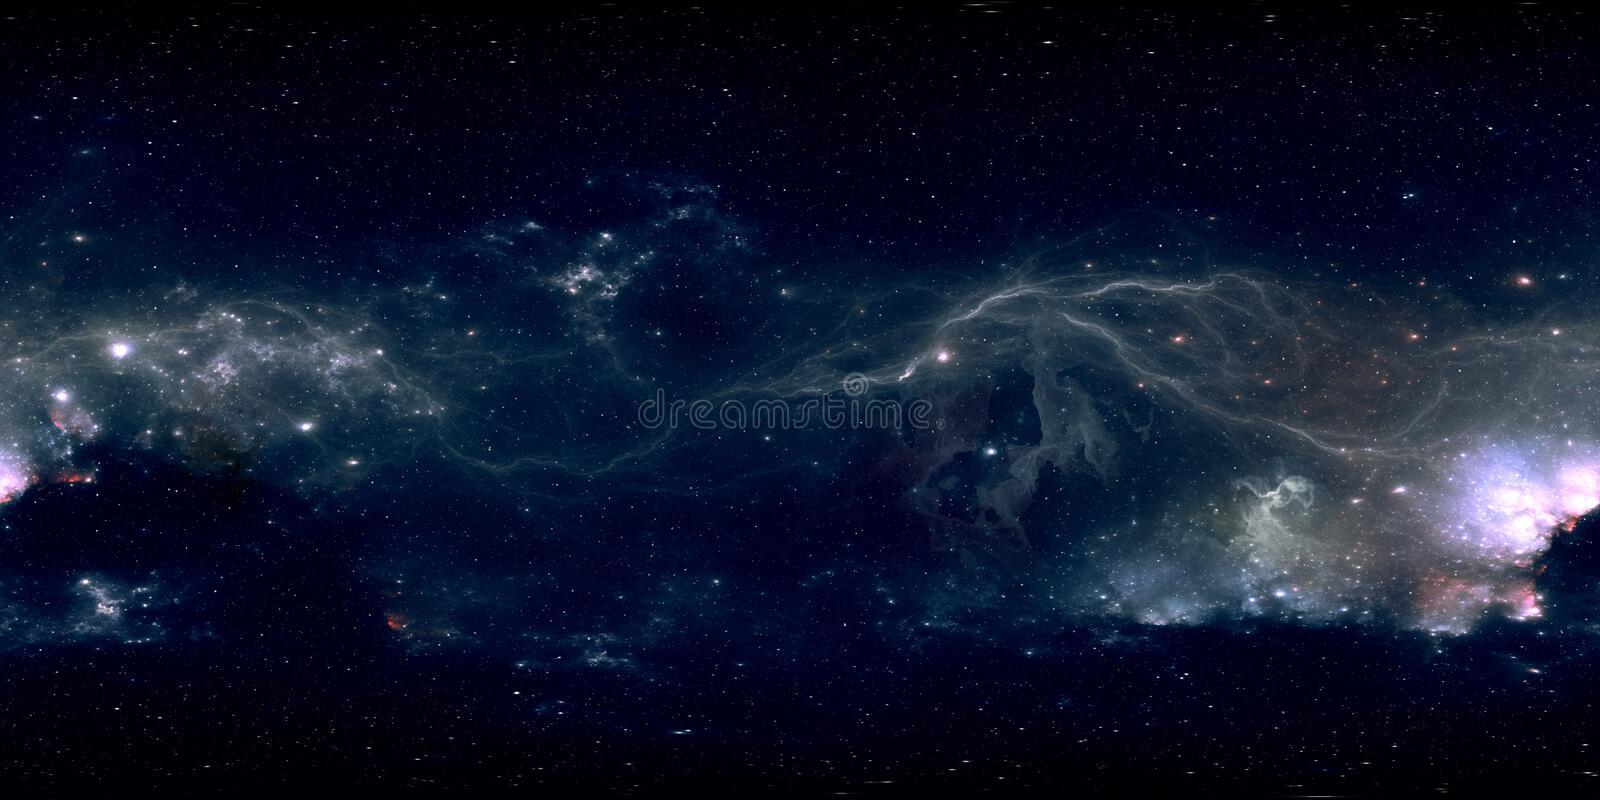 360 degree space background with glowing huge nebula with young stars, equirectangular projection, environment map. HDRI spherical stock photos